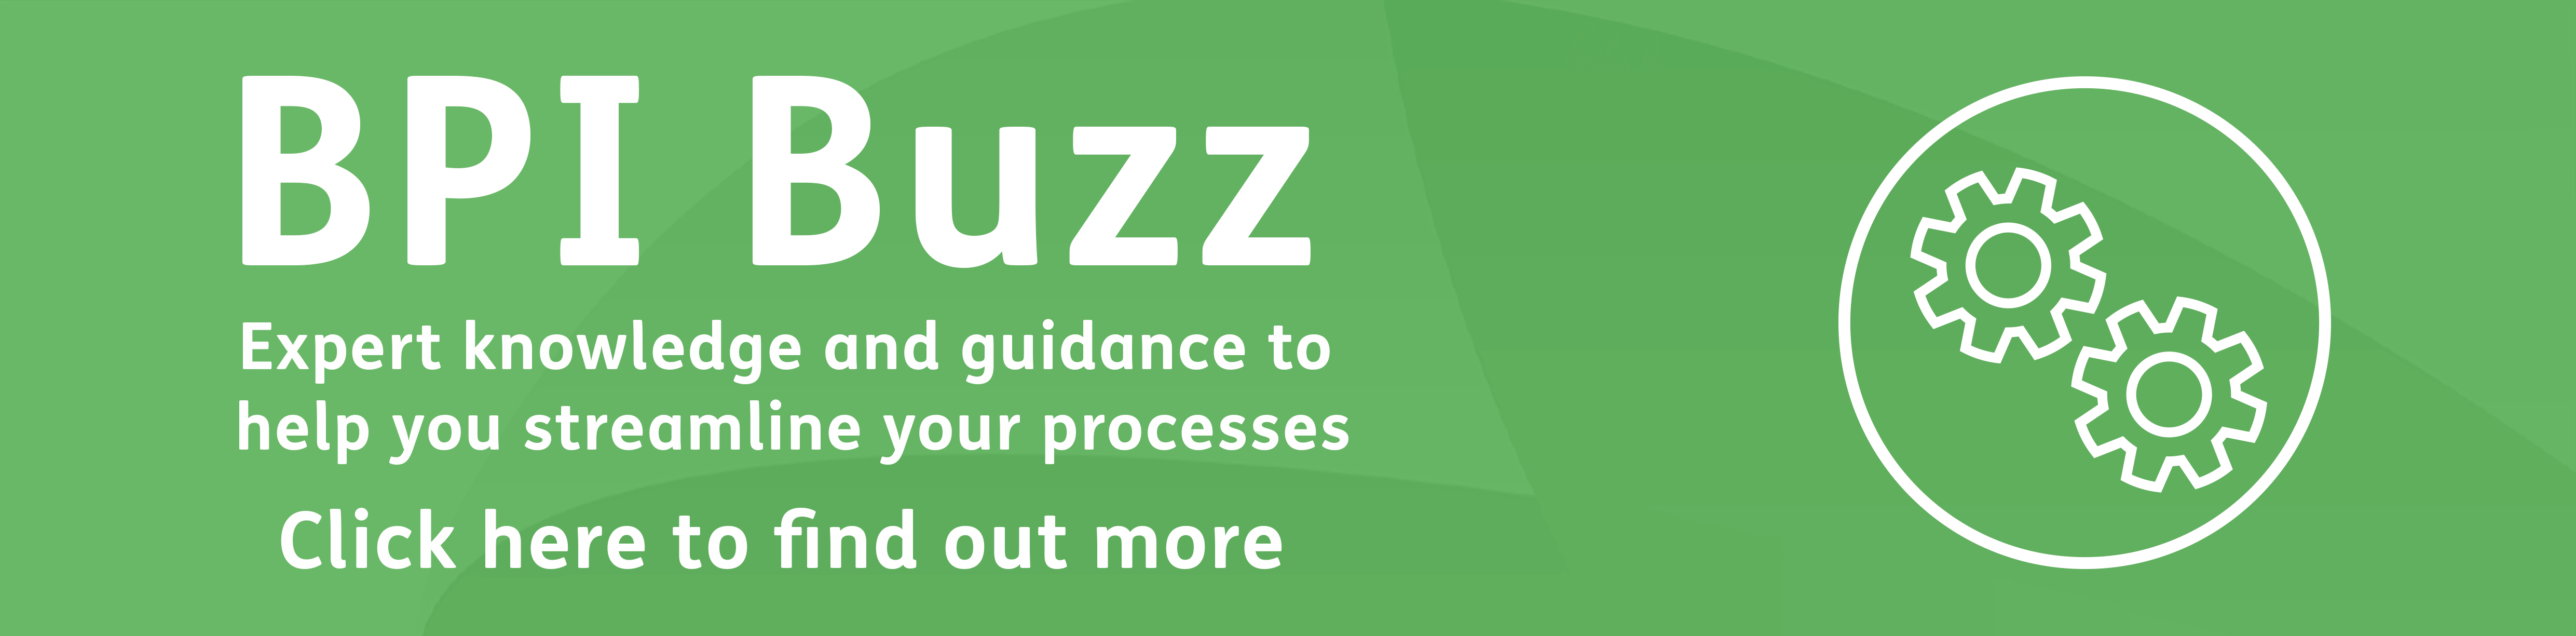 5 Ways to get started with Business Process Improvement - Sage UK